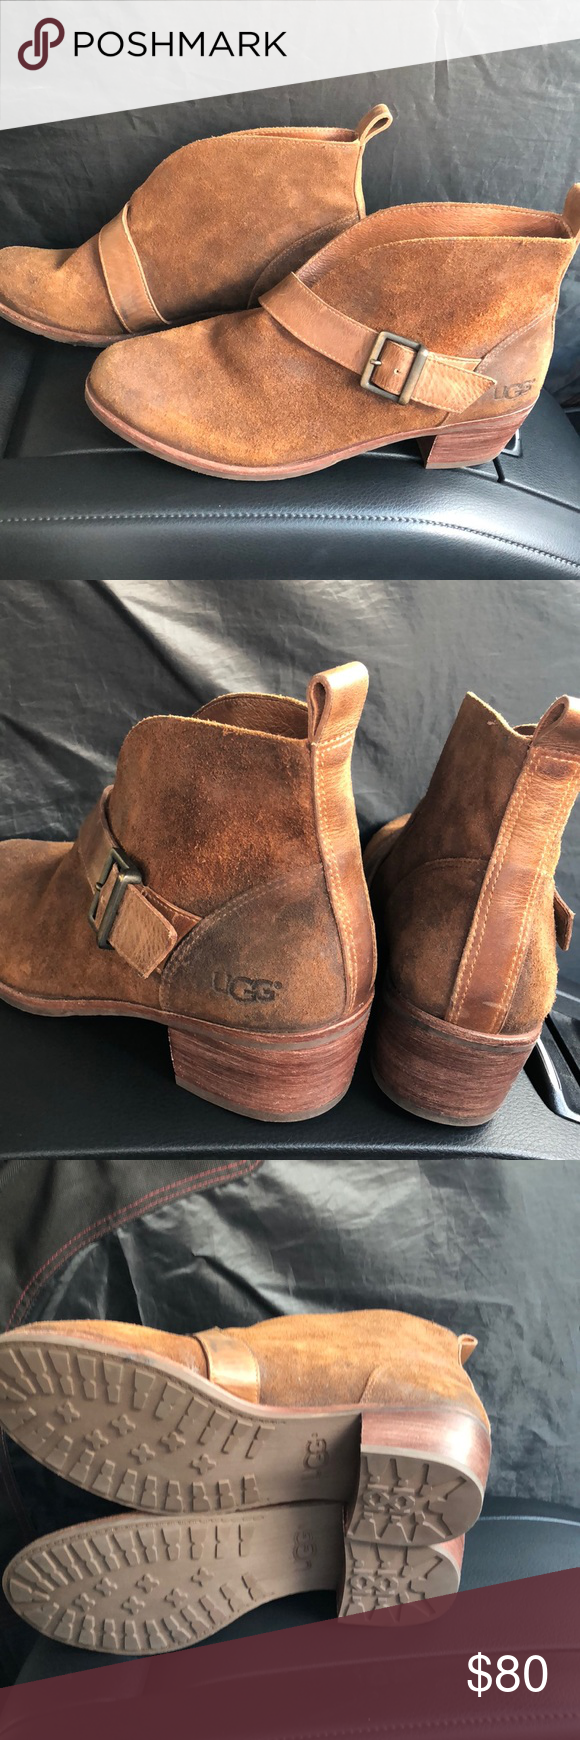 67e2ecfea4e UGG Wright Belted Ankle Boots NWOT Ugg Ankle booties Suede. Brown ...